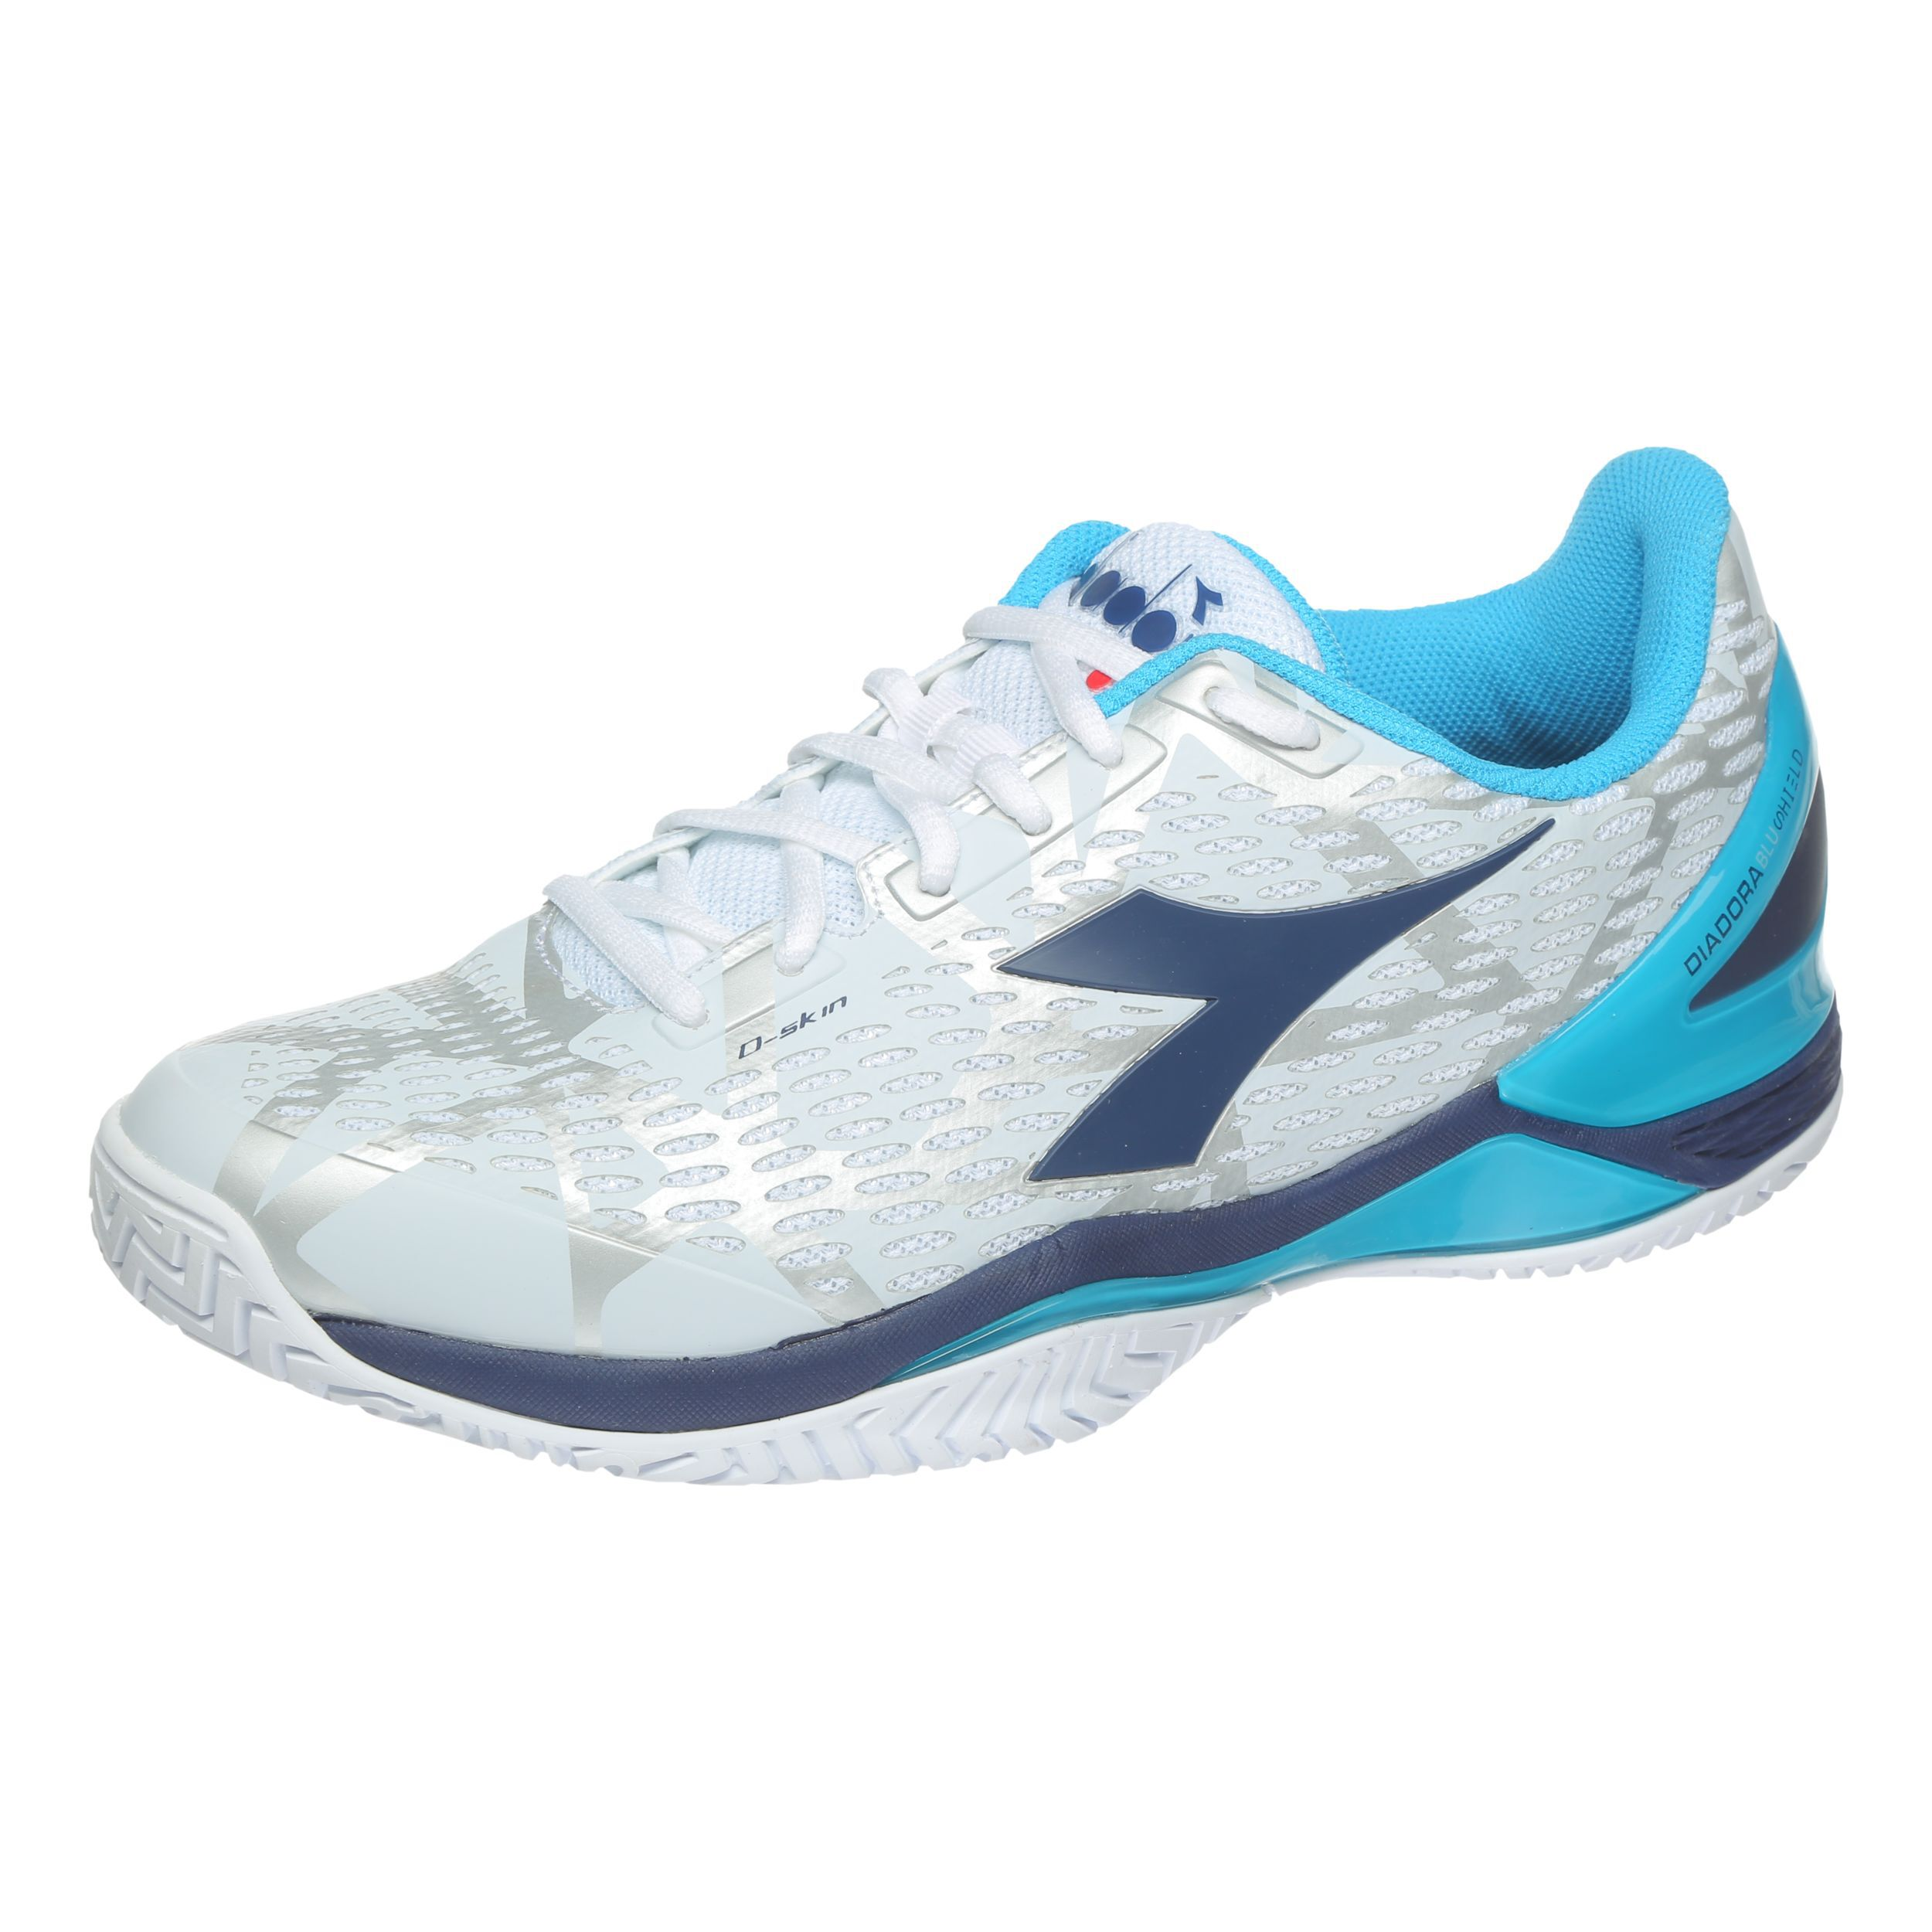 Diadora Speed Blushield 2 AG Scarpa Per Tutte Le Superfici